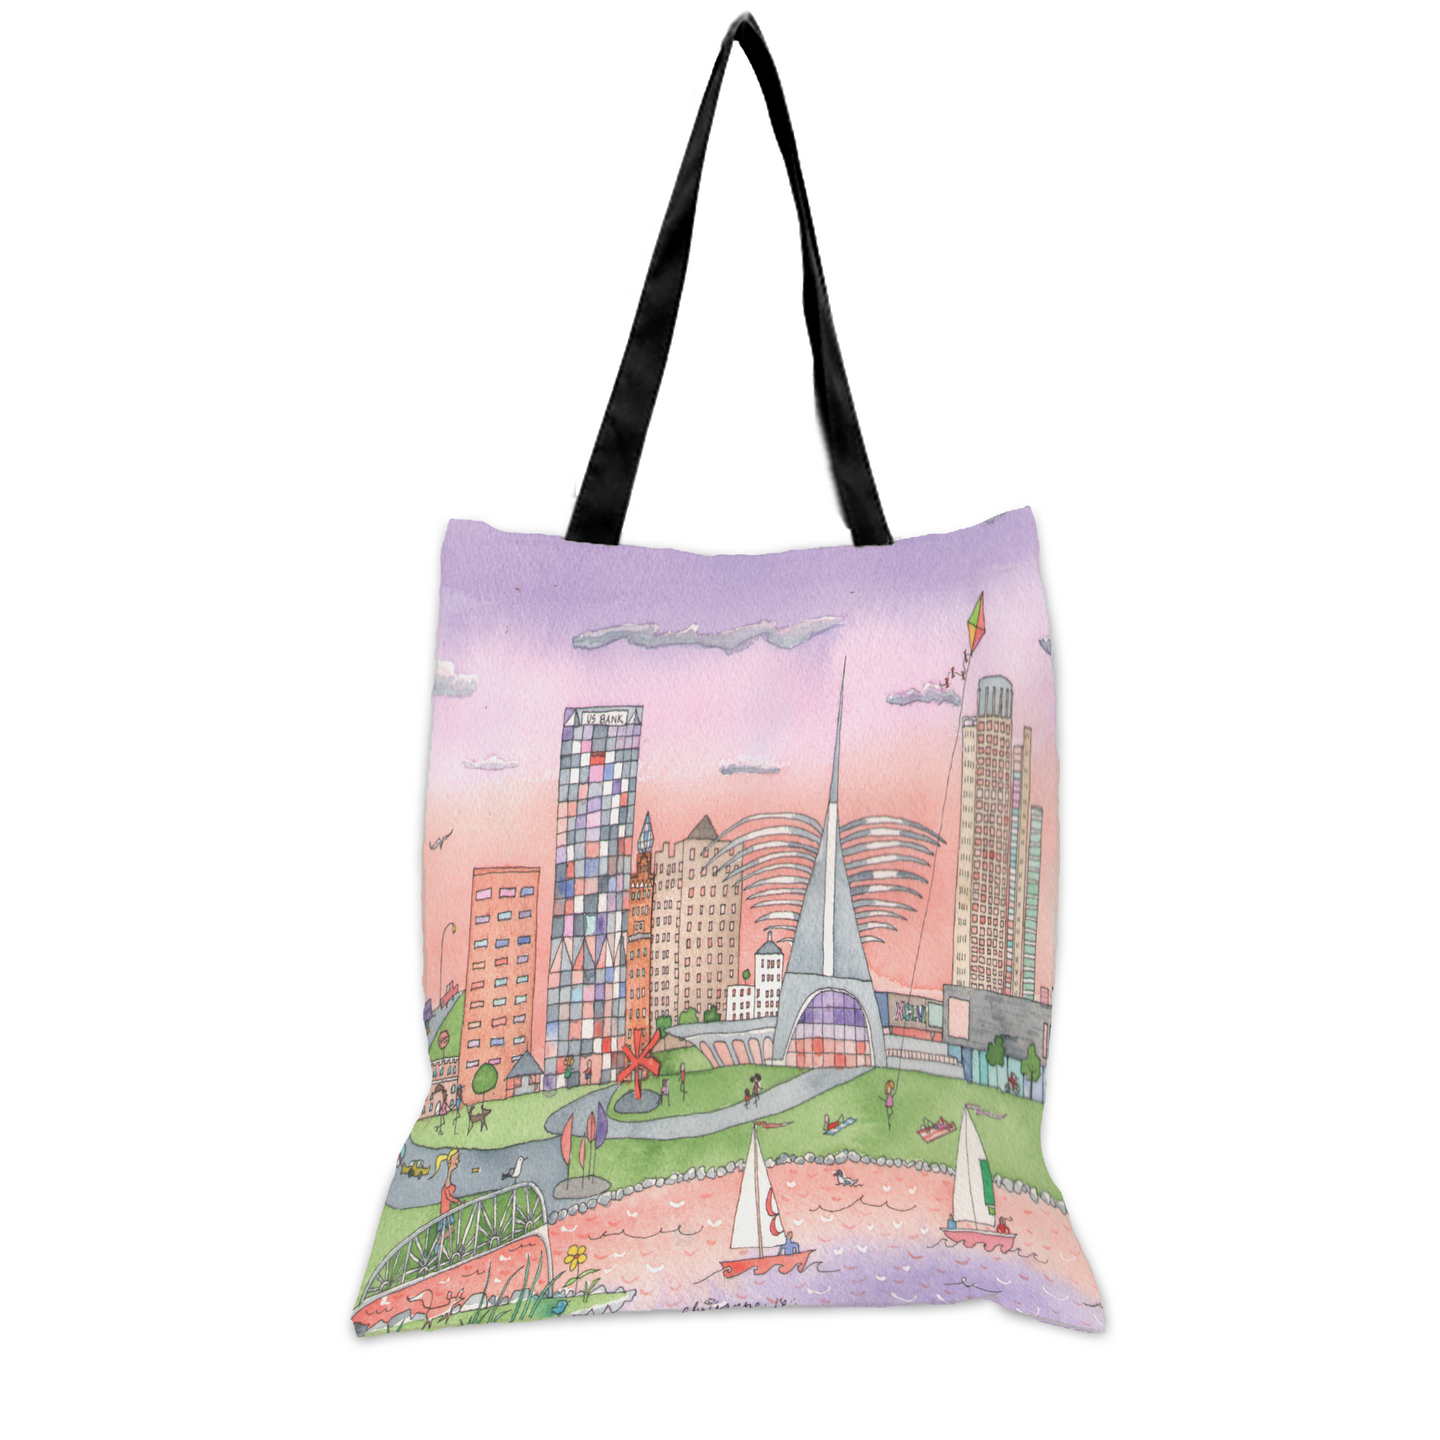 Milwaukee Sunlit Shores 15x17 Tote Bag